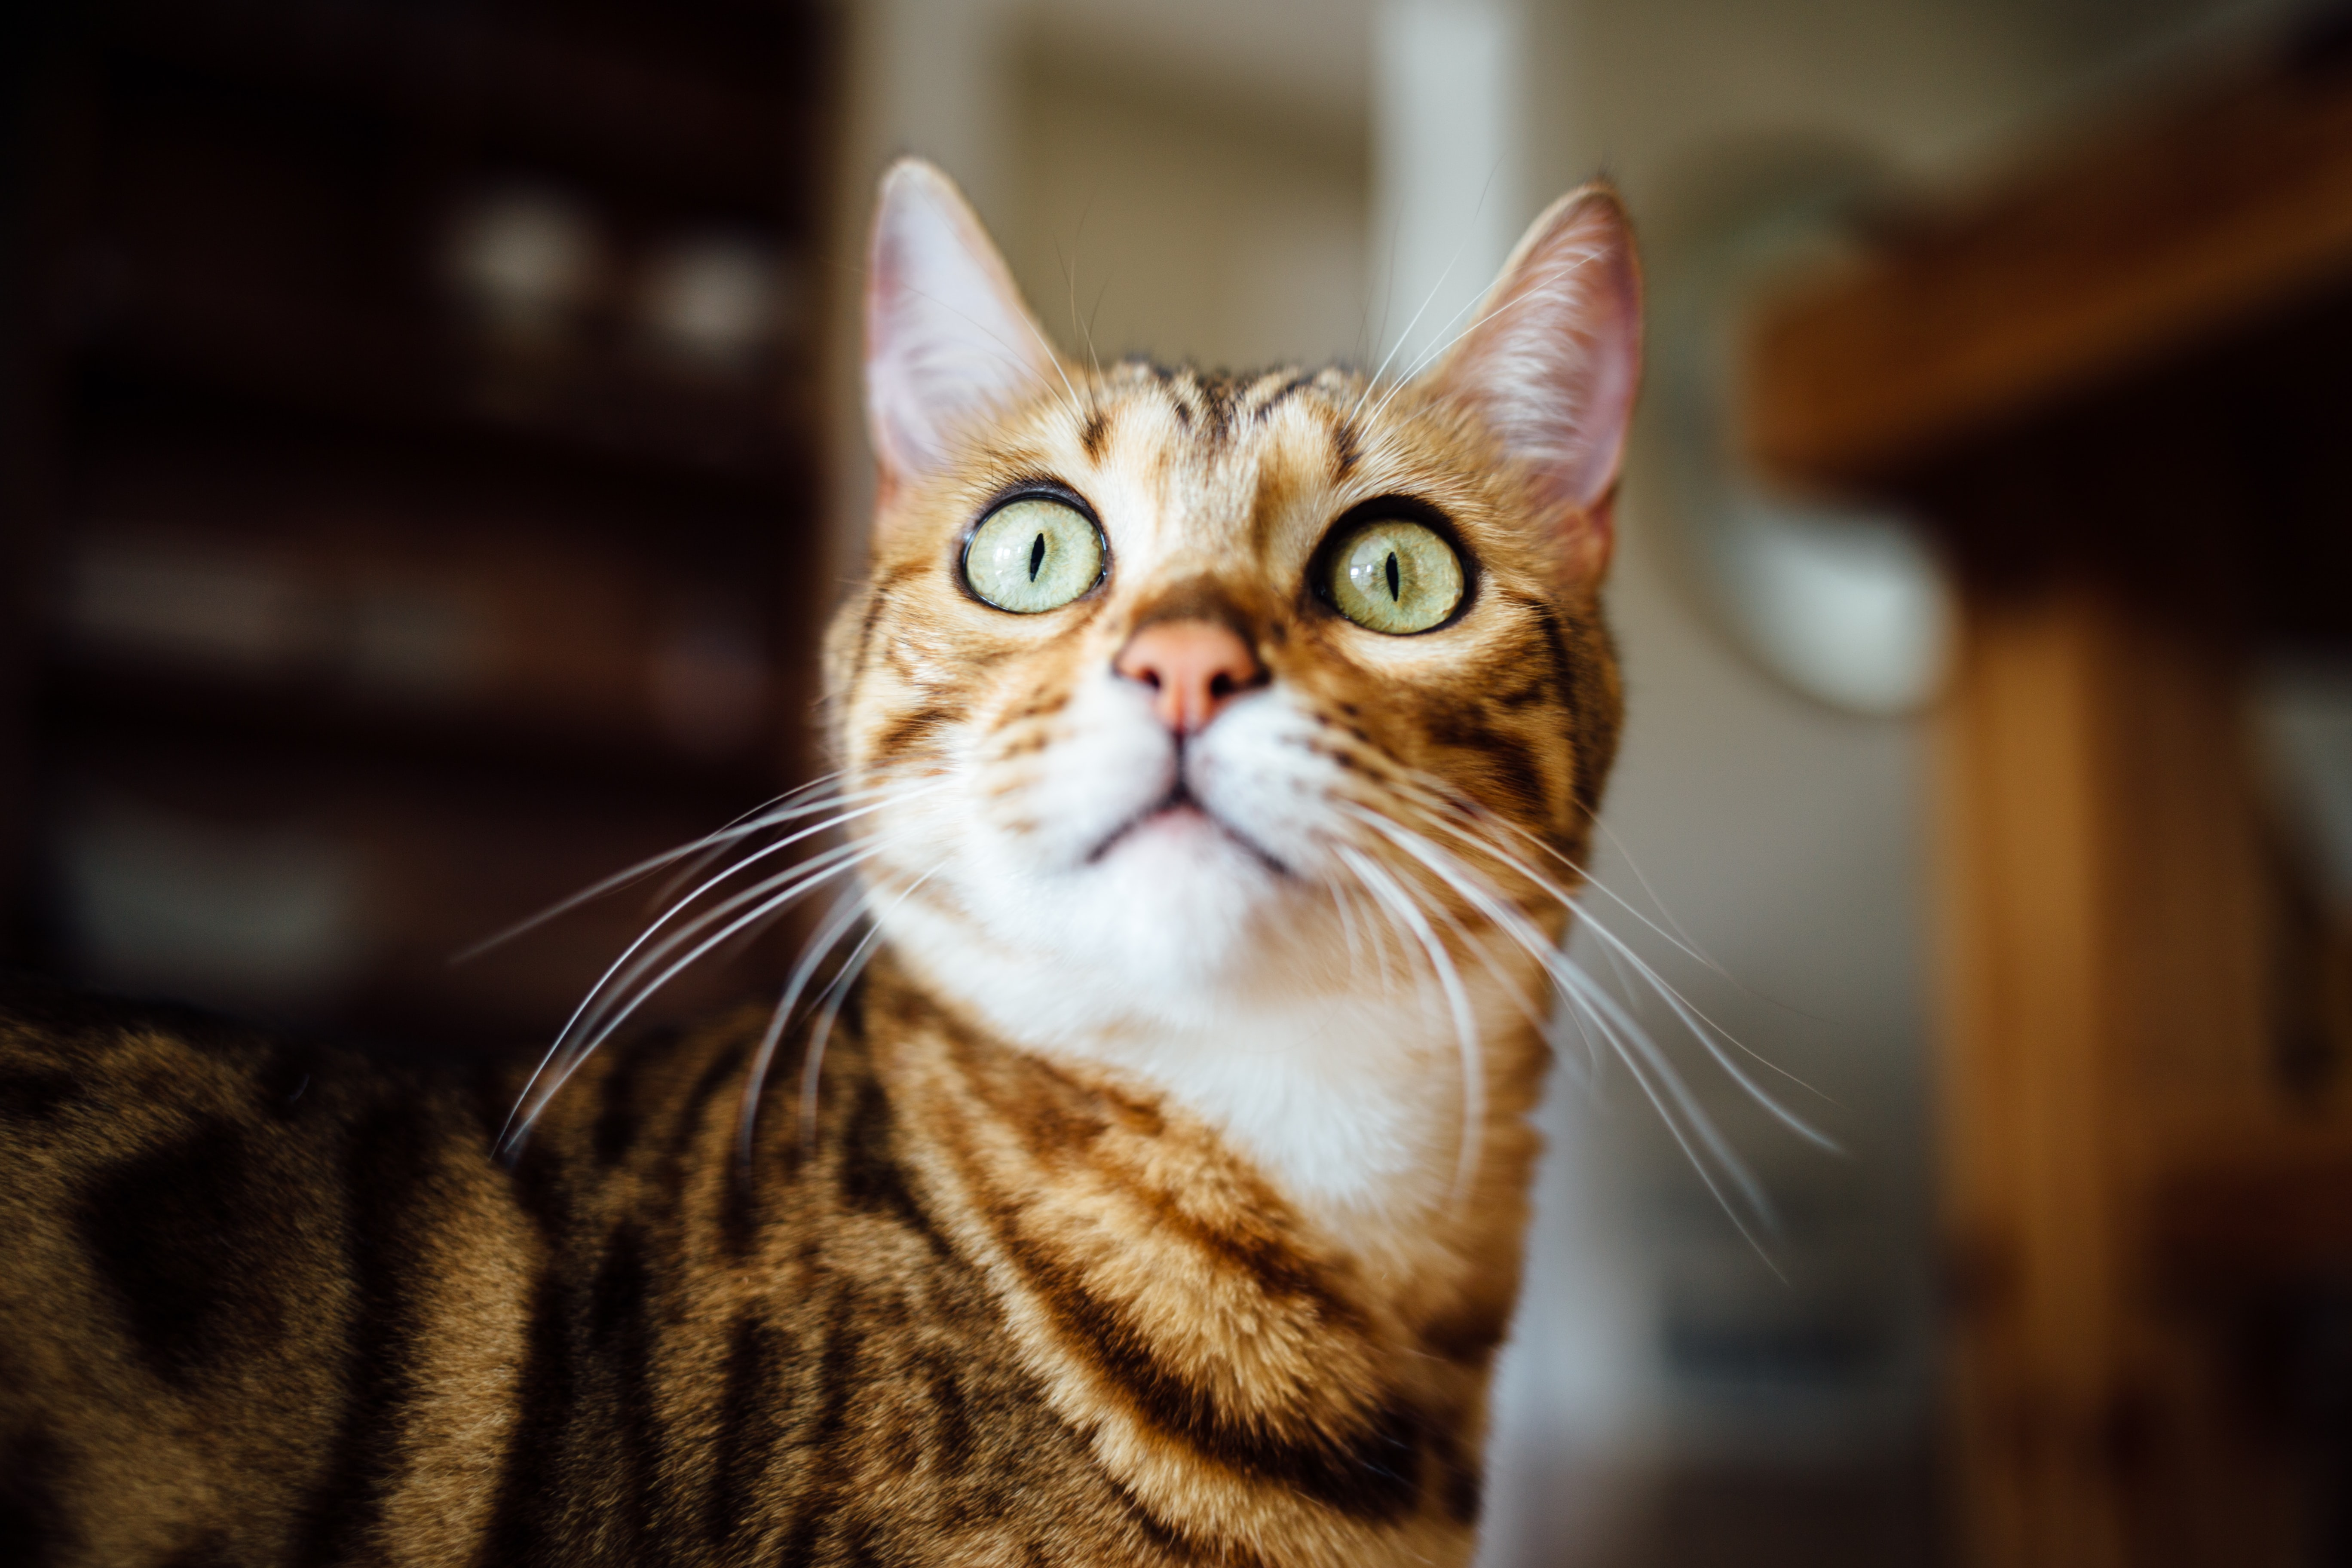 Close-up of a ginger cat's eyes growing wide